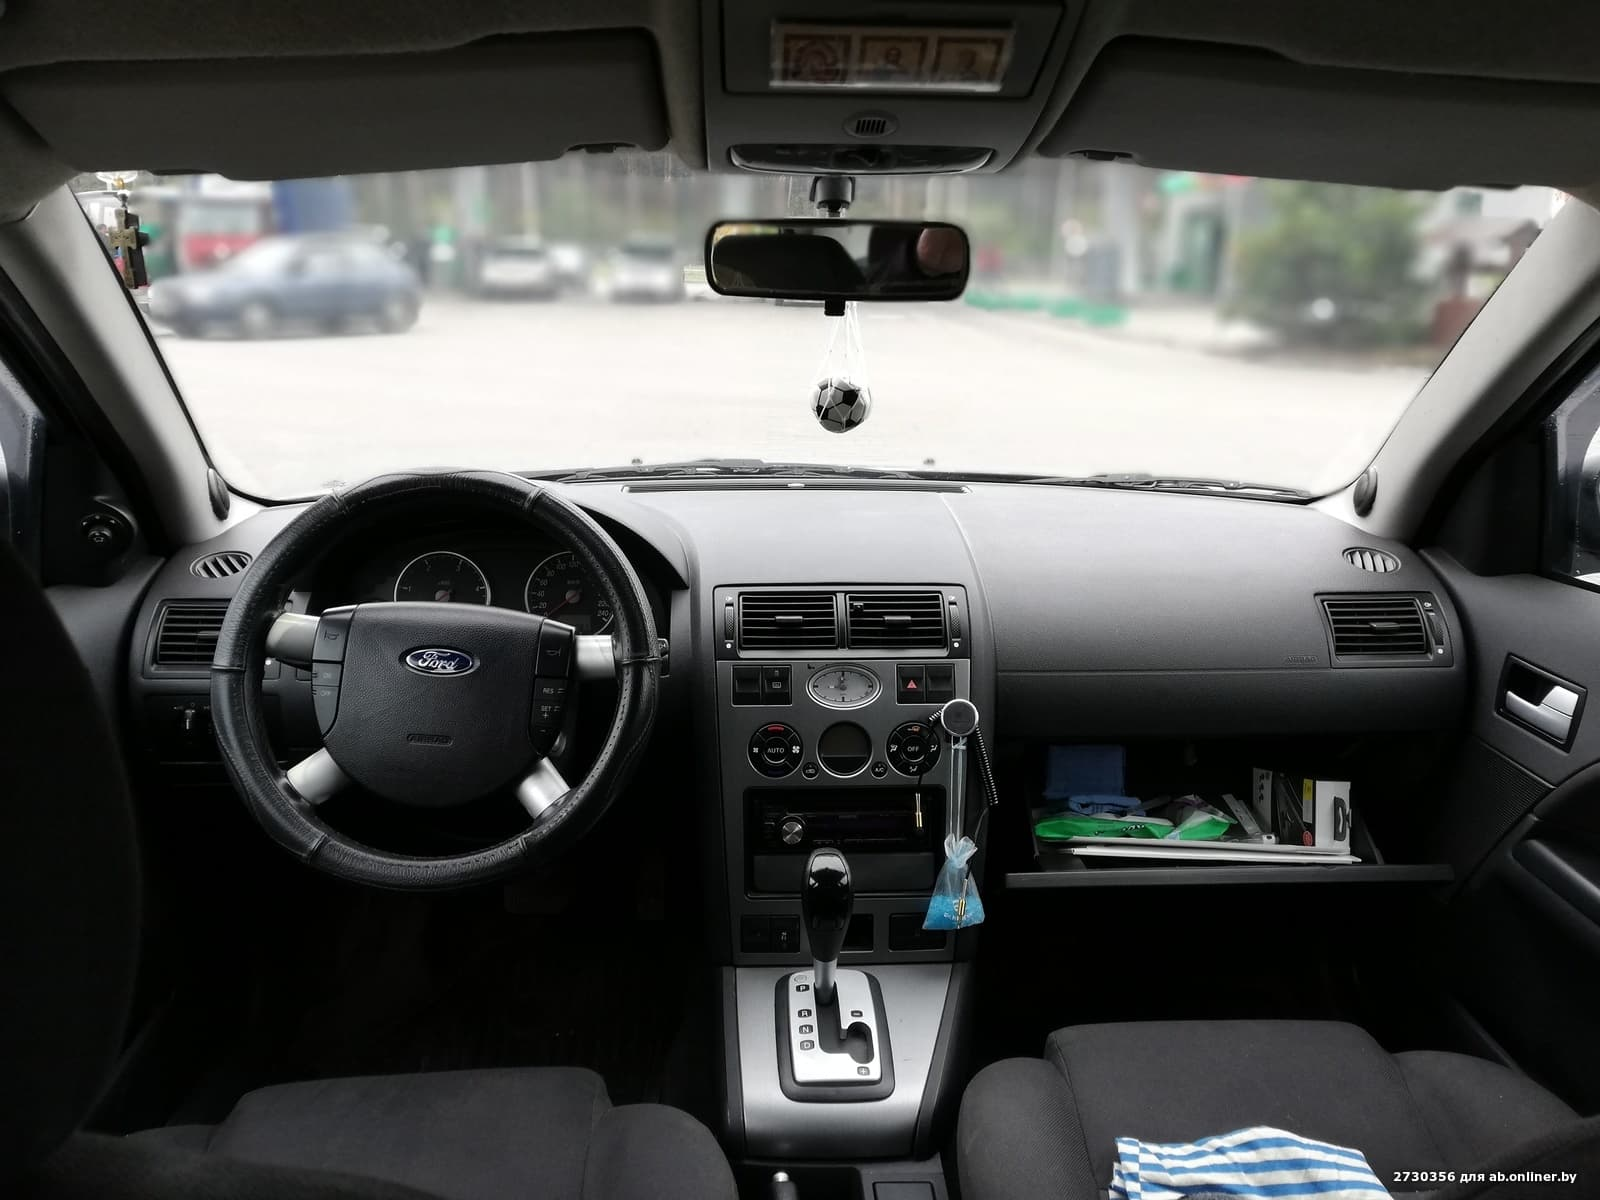 Ford Mondeo 2.0 TDCI 130 л/с